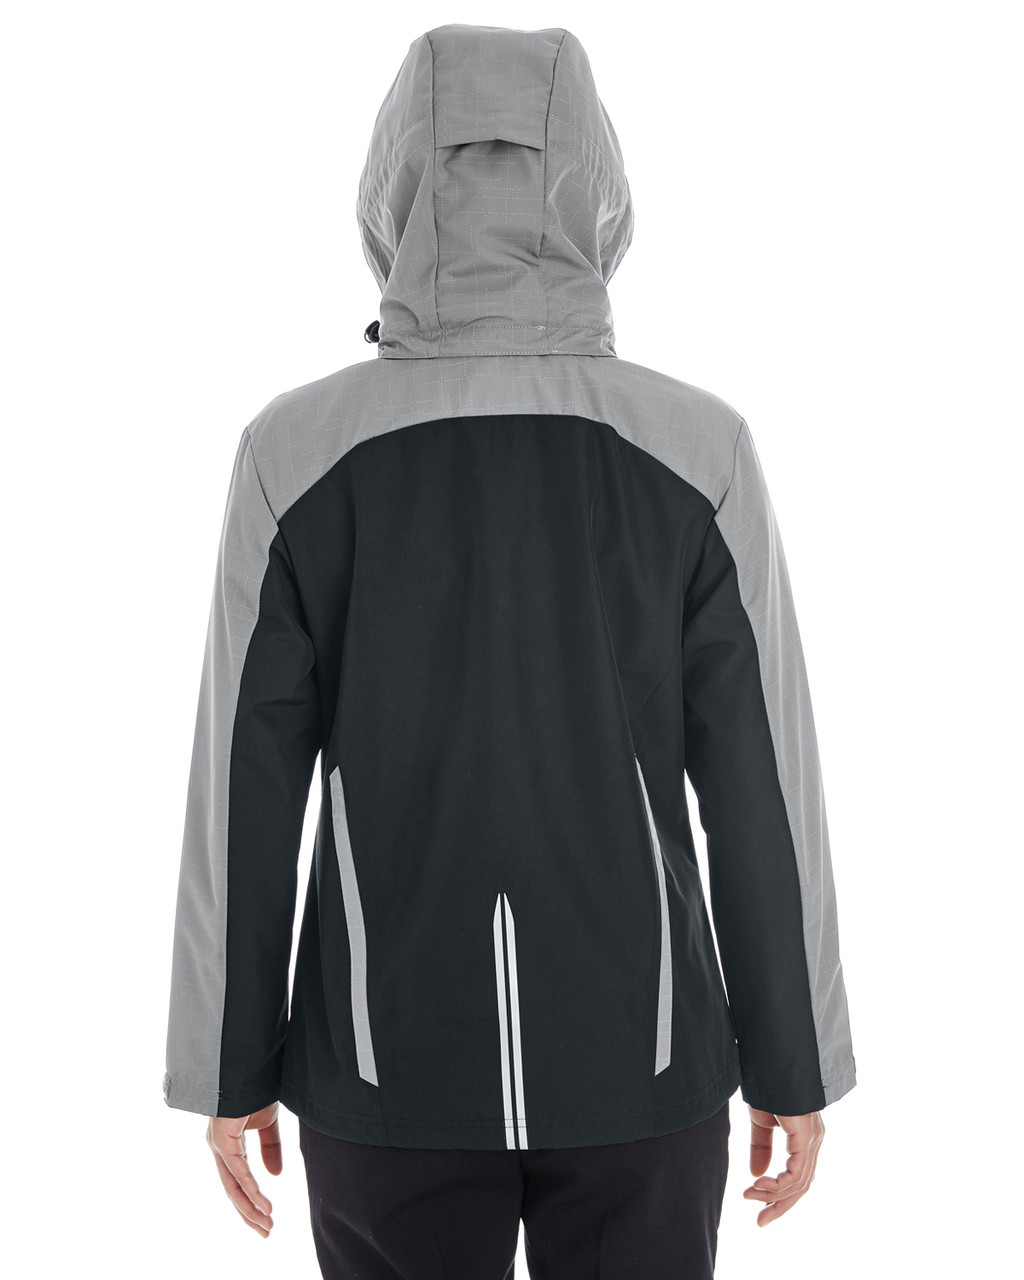 Black/Grey/Red - BACK - NE700W Ash City - North End Ladies' Embark Colorblock Interactive Shell Jacket with Reflective Printed Panels | Blankclothing.ca